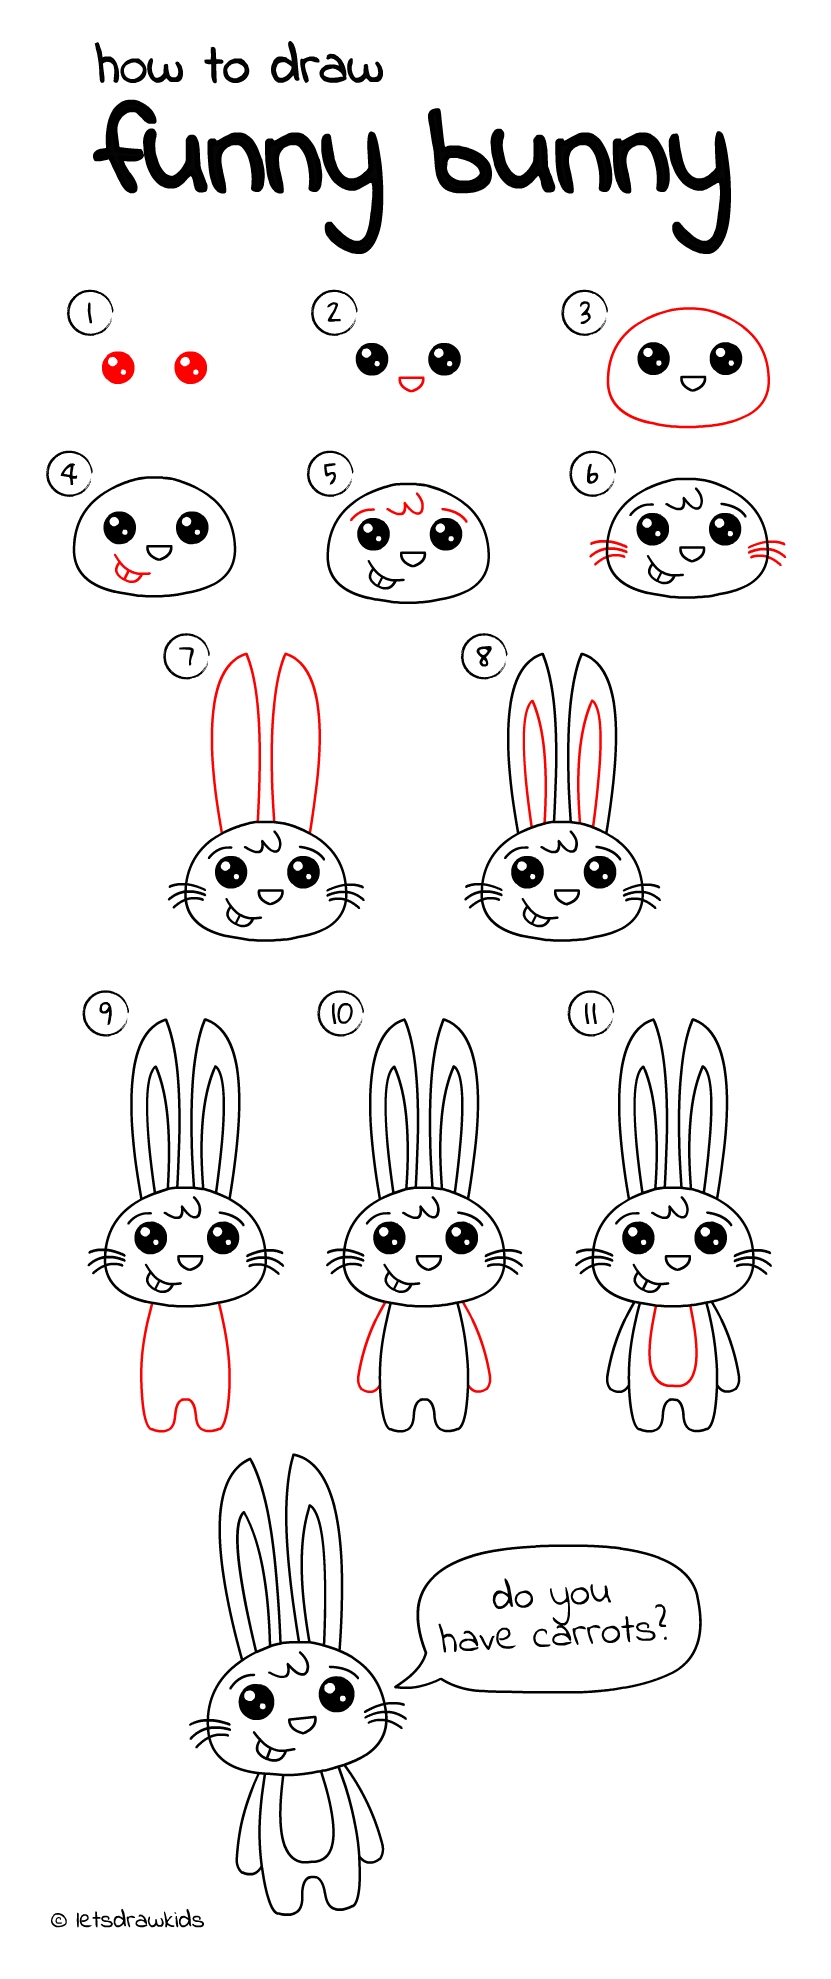 10 Elegant Drawing Ideas For Kids Step By Step how to draw funny bunny easy drawing stepstep perfect for 2021